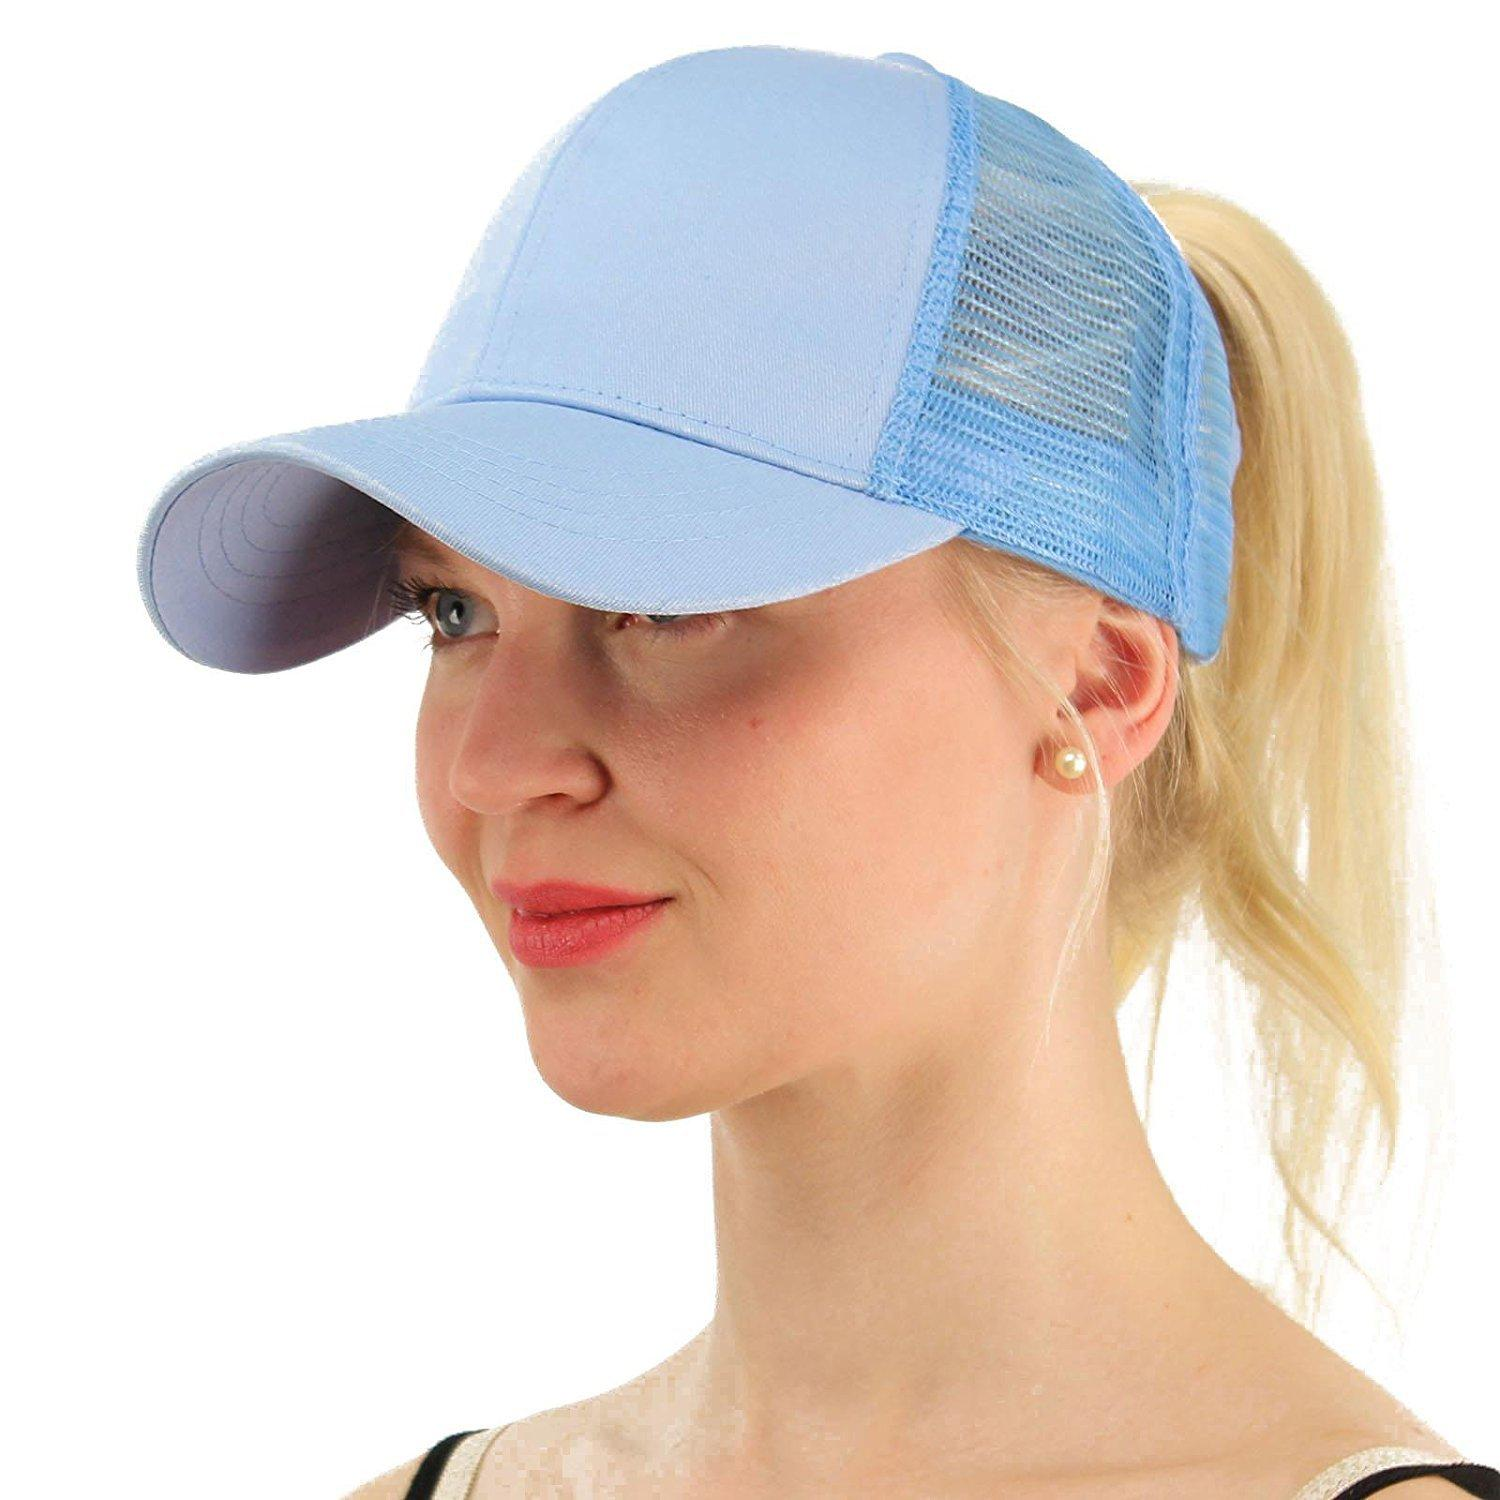 Sale As Picture Real Rushed Unisex 2018 Women Cc for Ponytail Hats ... ca7a12a3bbcf